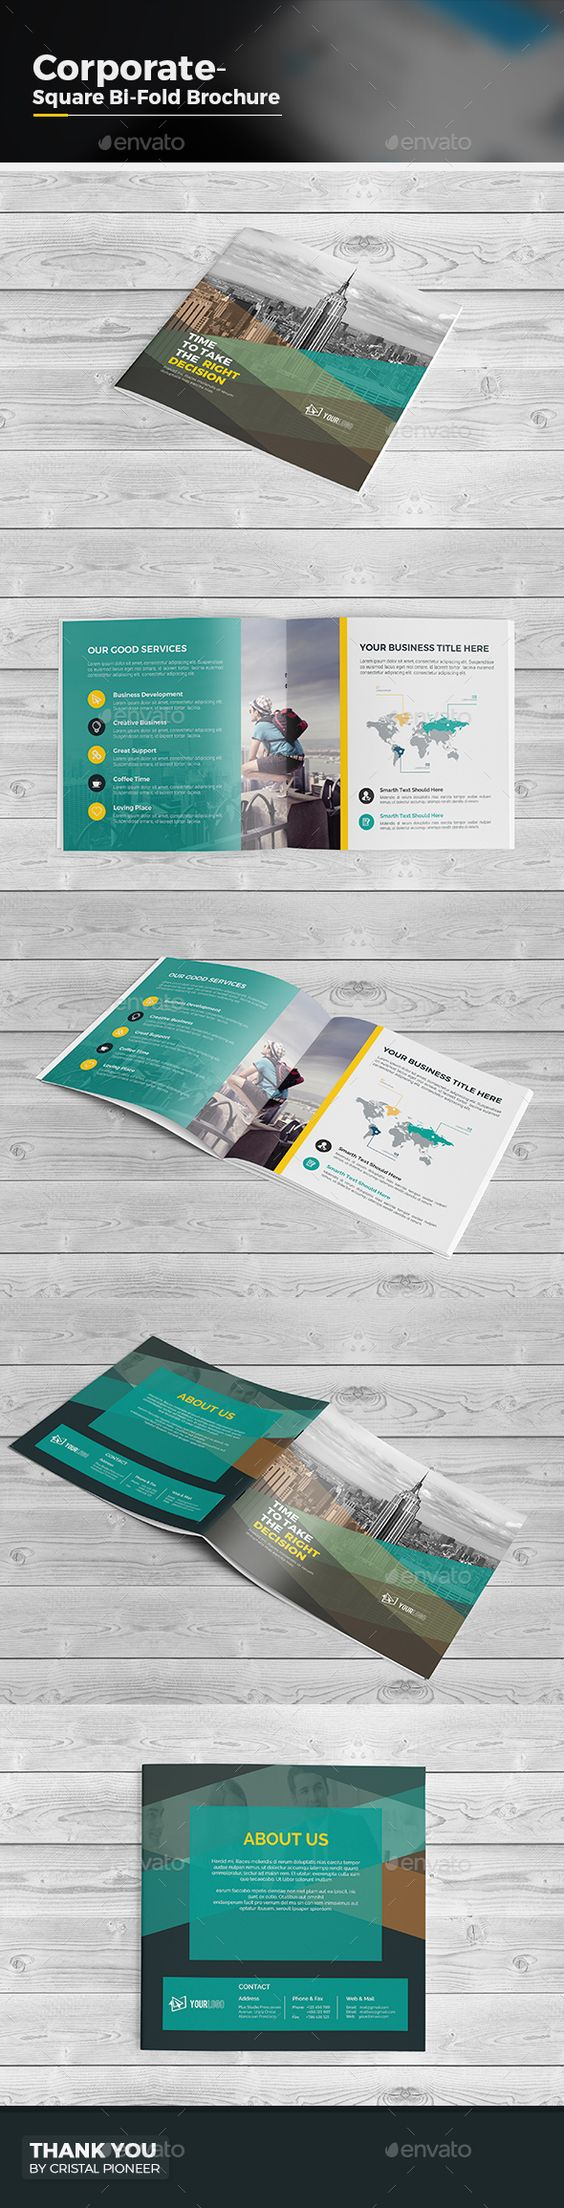 Square Bi Fold Brochure Template  — EPS Template #square brochure #financial • Download ➝ https://graphicriver.net/item/square-bi-fold-brochure-template/18104359?ref=pxcr